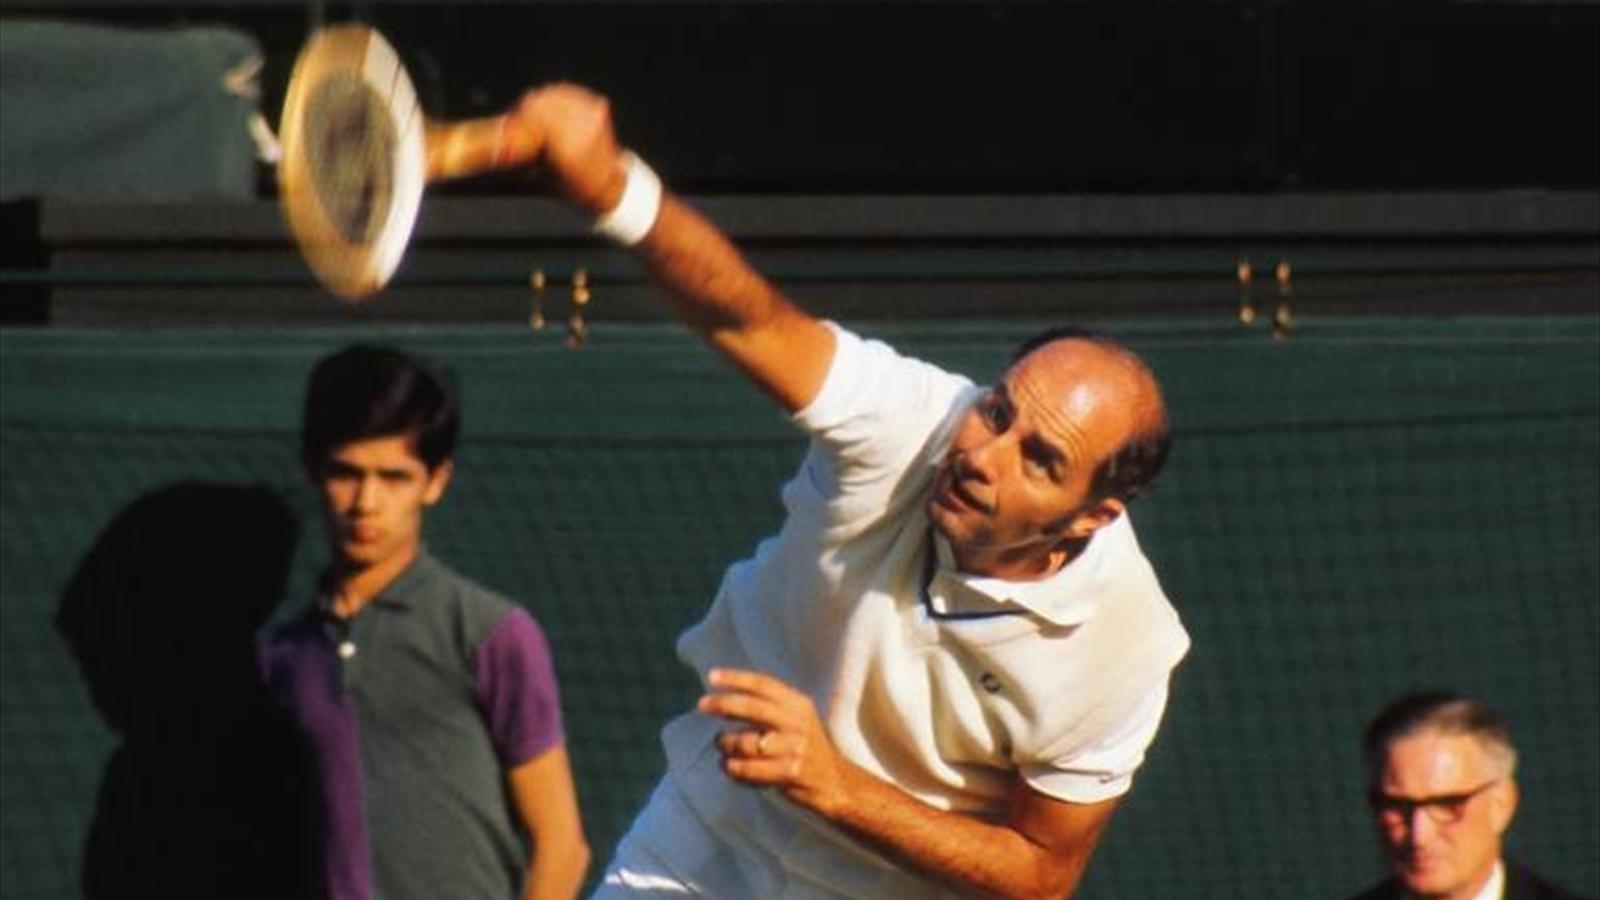 Legendary tennis player accused of rape